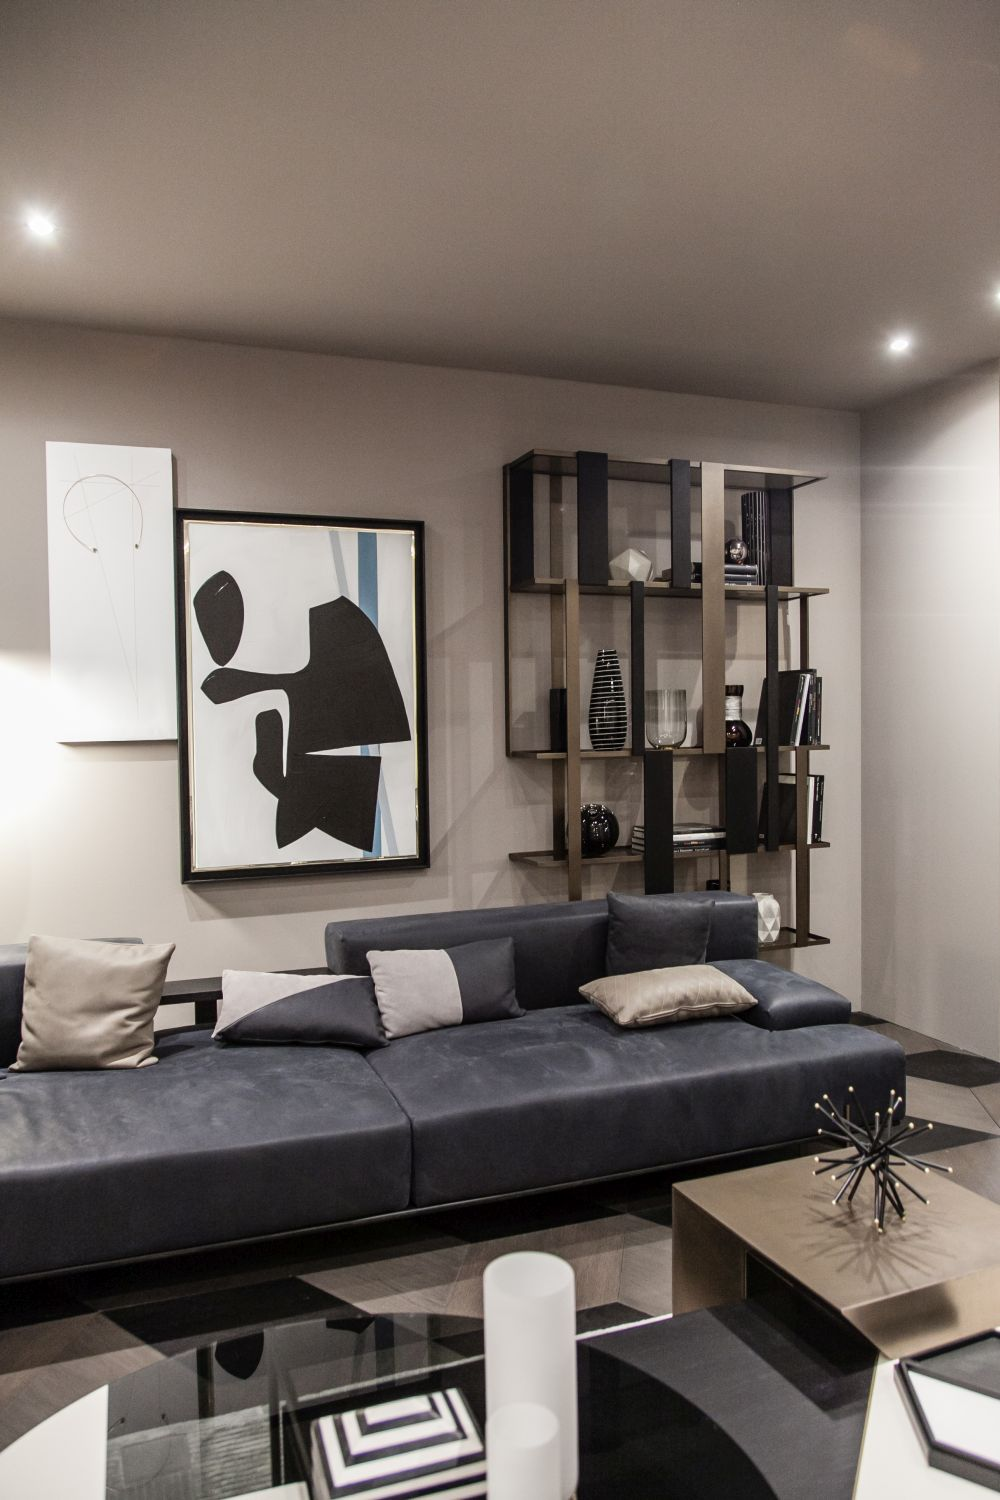 1560941272 226 fun wall designs to turn a blank space into a terrific decor element - Fun Wall Designs To Turn a Blank Space into a Terrific Decor Element